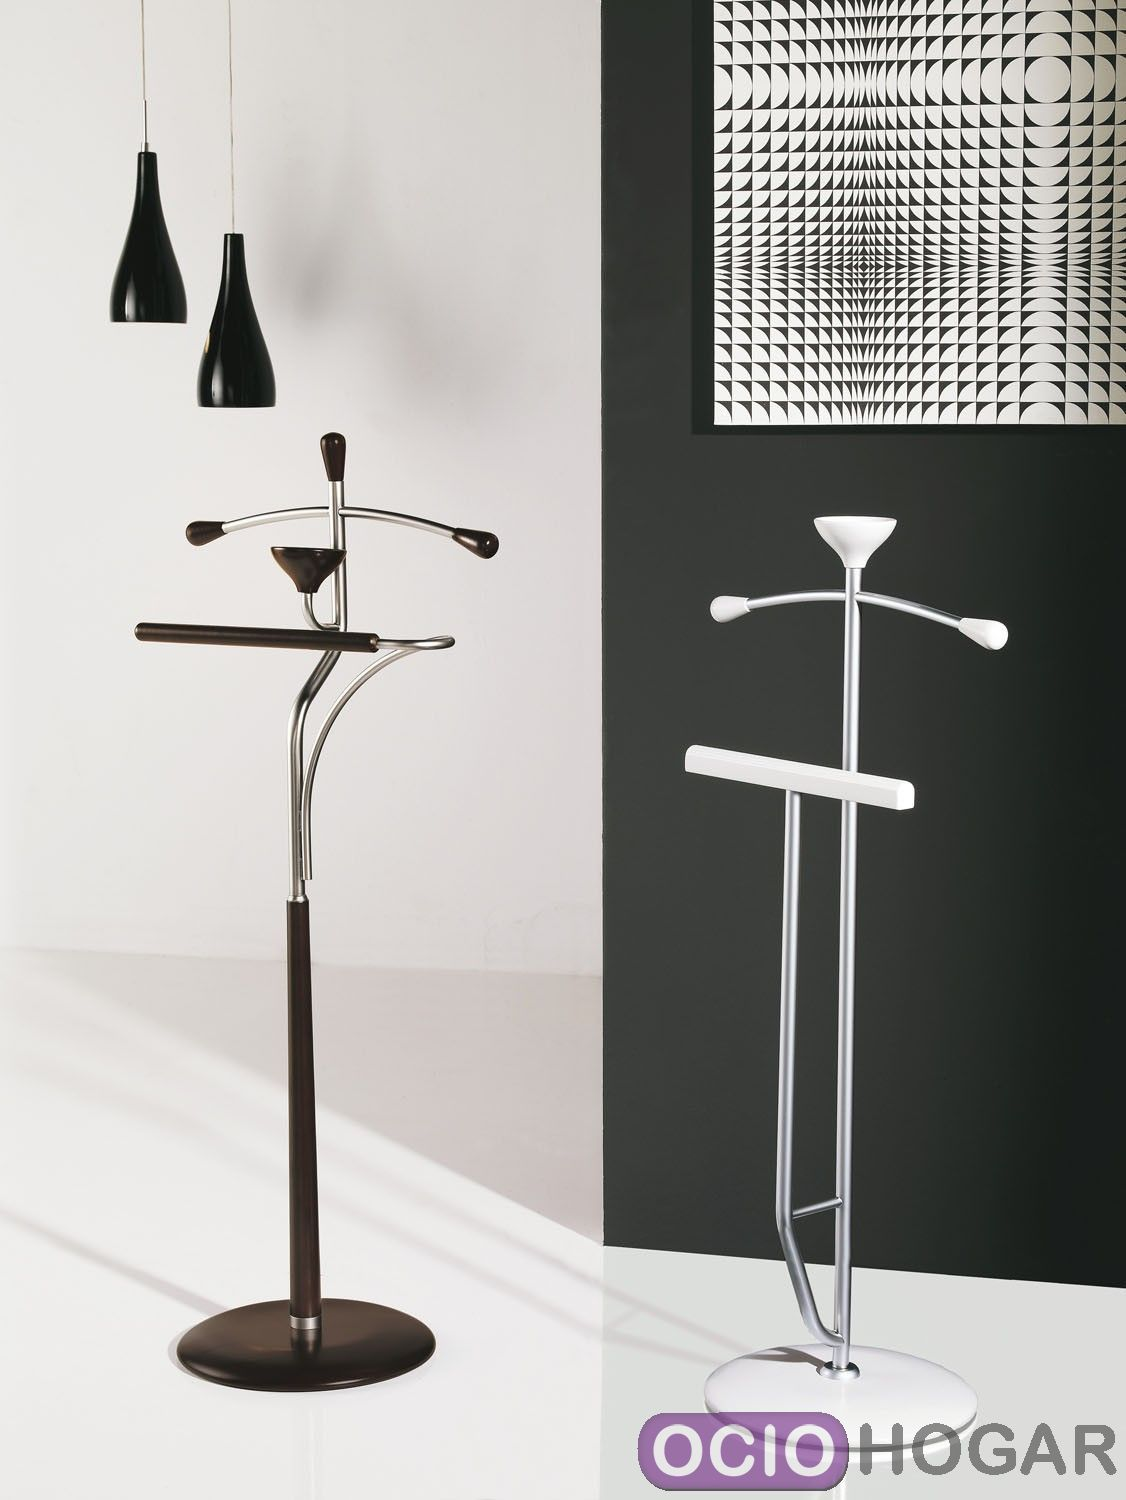 Silla galan de noche awesome galn metal base redonda xx for Galan de noche conforama